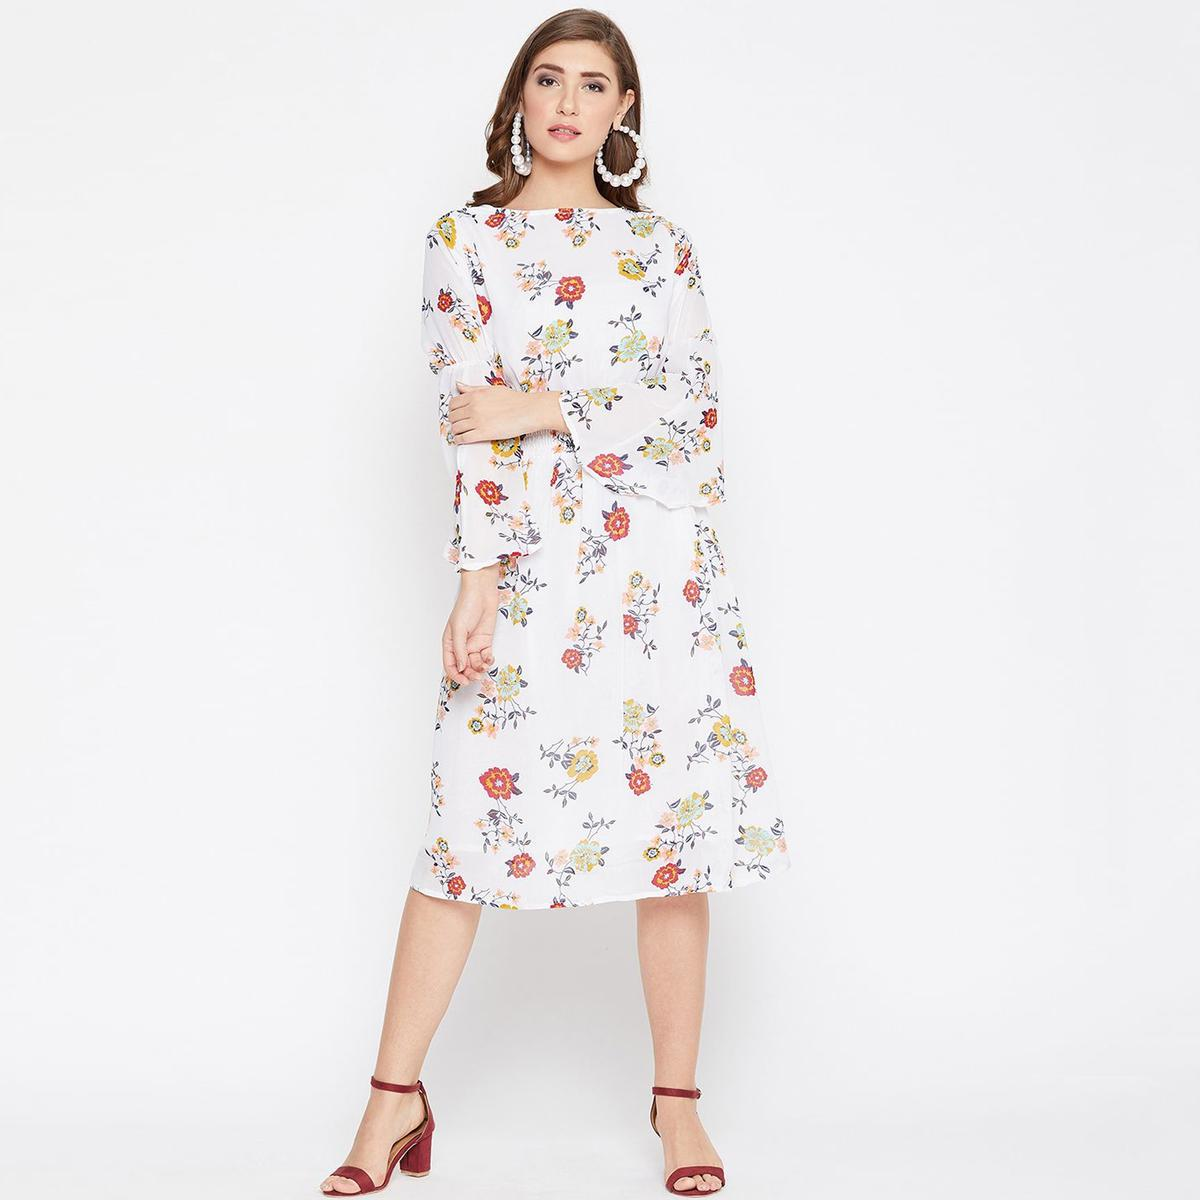 Flaunt White Color Casual Wear Floral Printed Georgette with Cotton lining Knee Length Dress